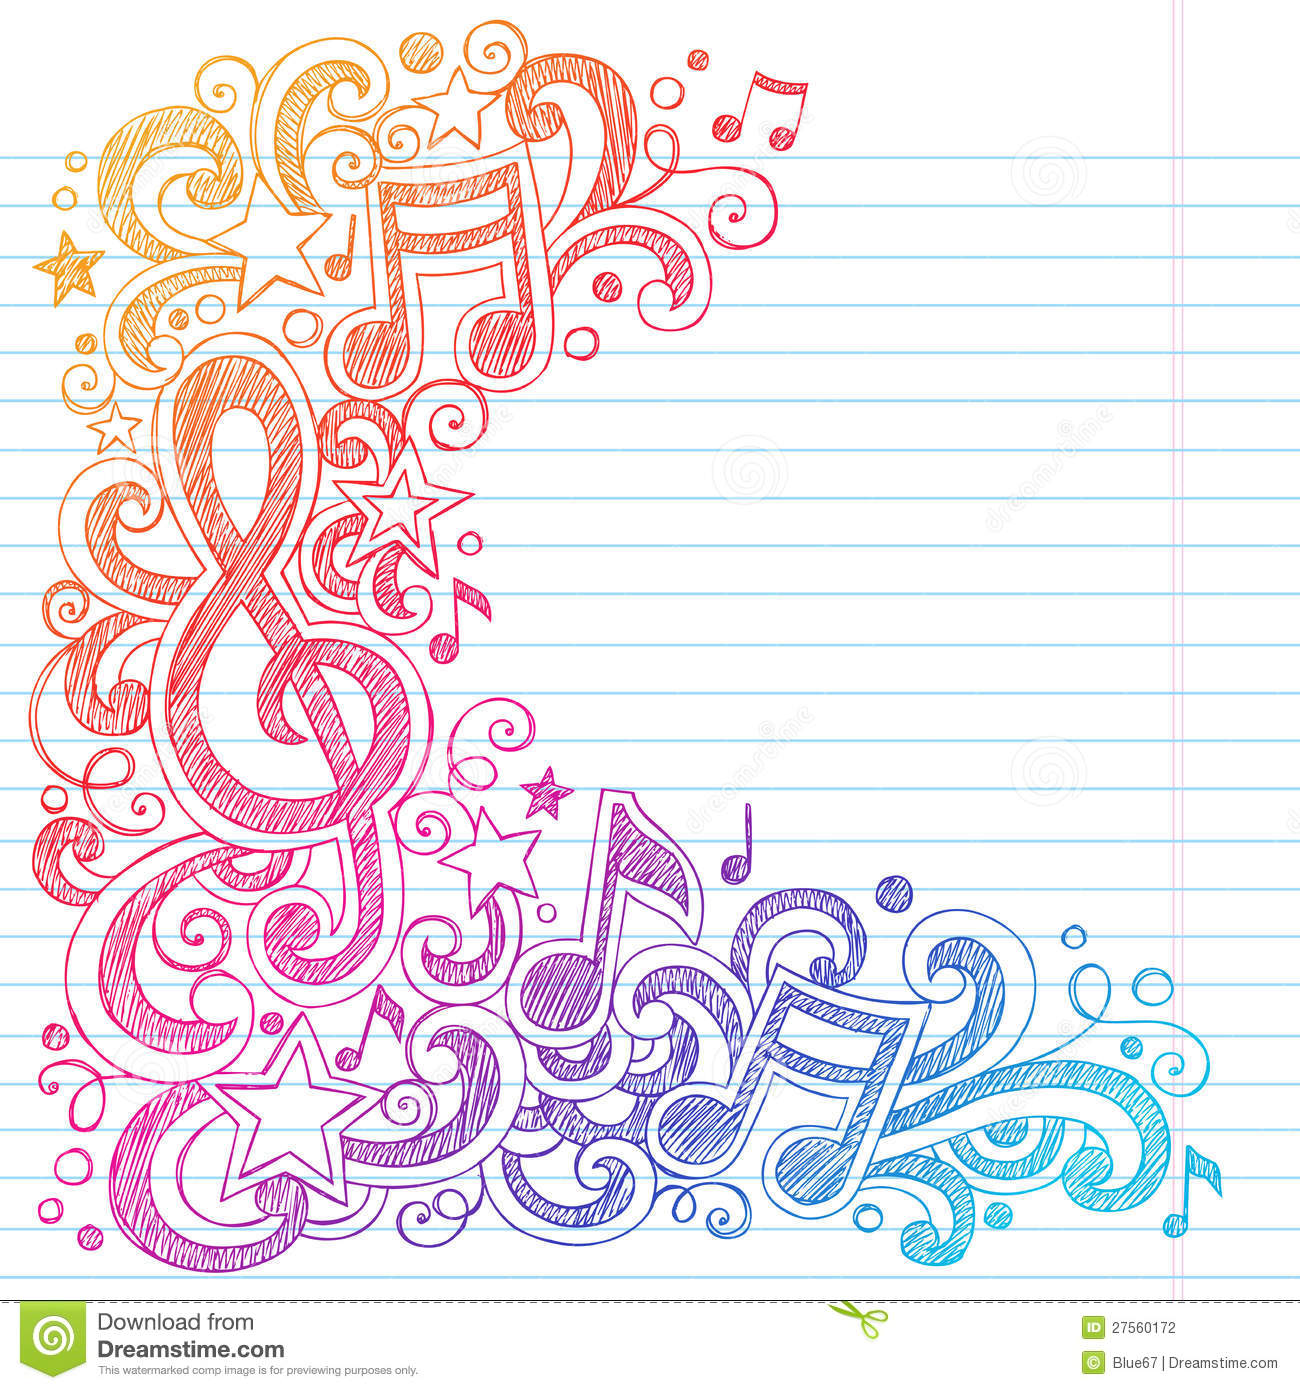 music notes sketchy school doodles vector stock vector illustration of artistic design 27560172. Black Bedroom Furniture Sets. Home Design Ideas